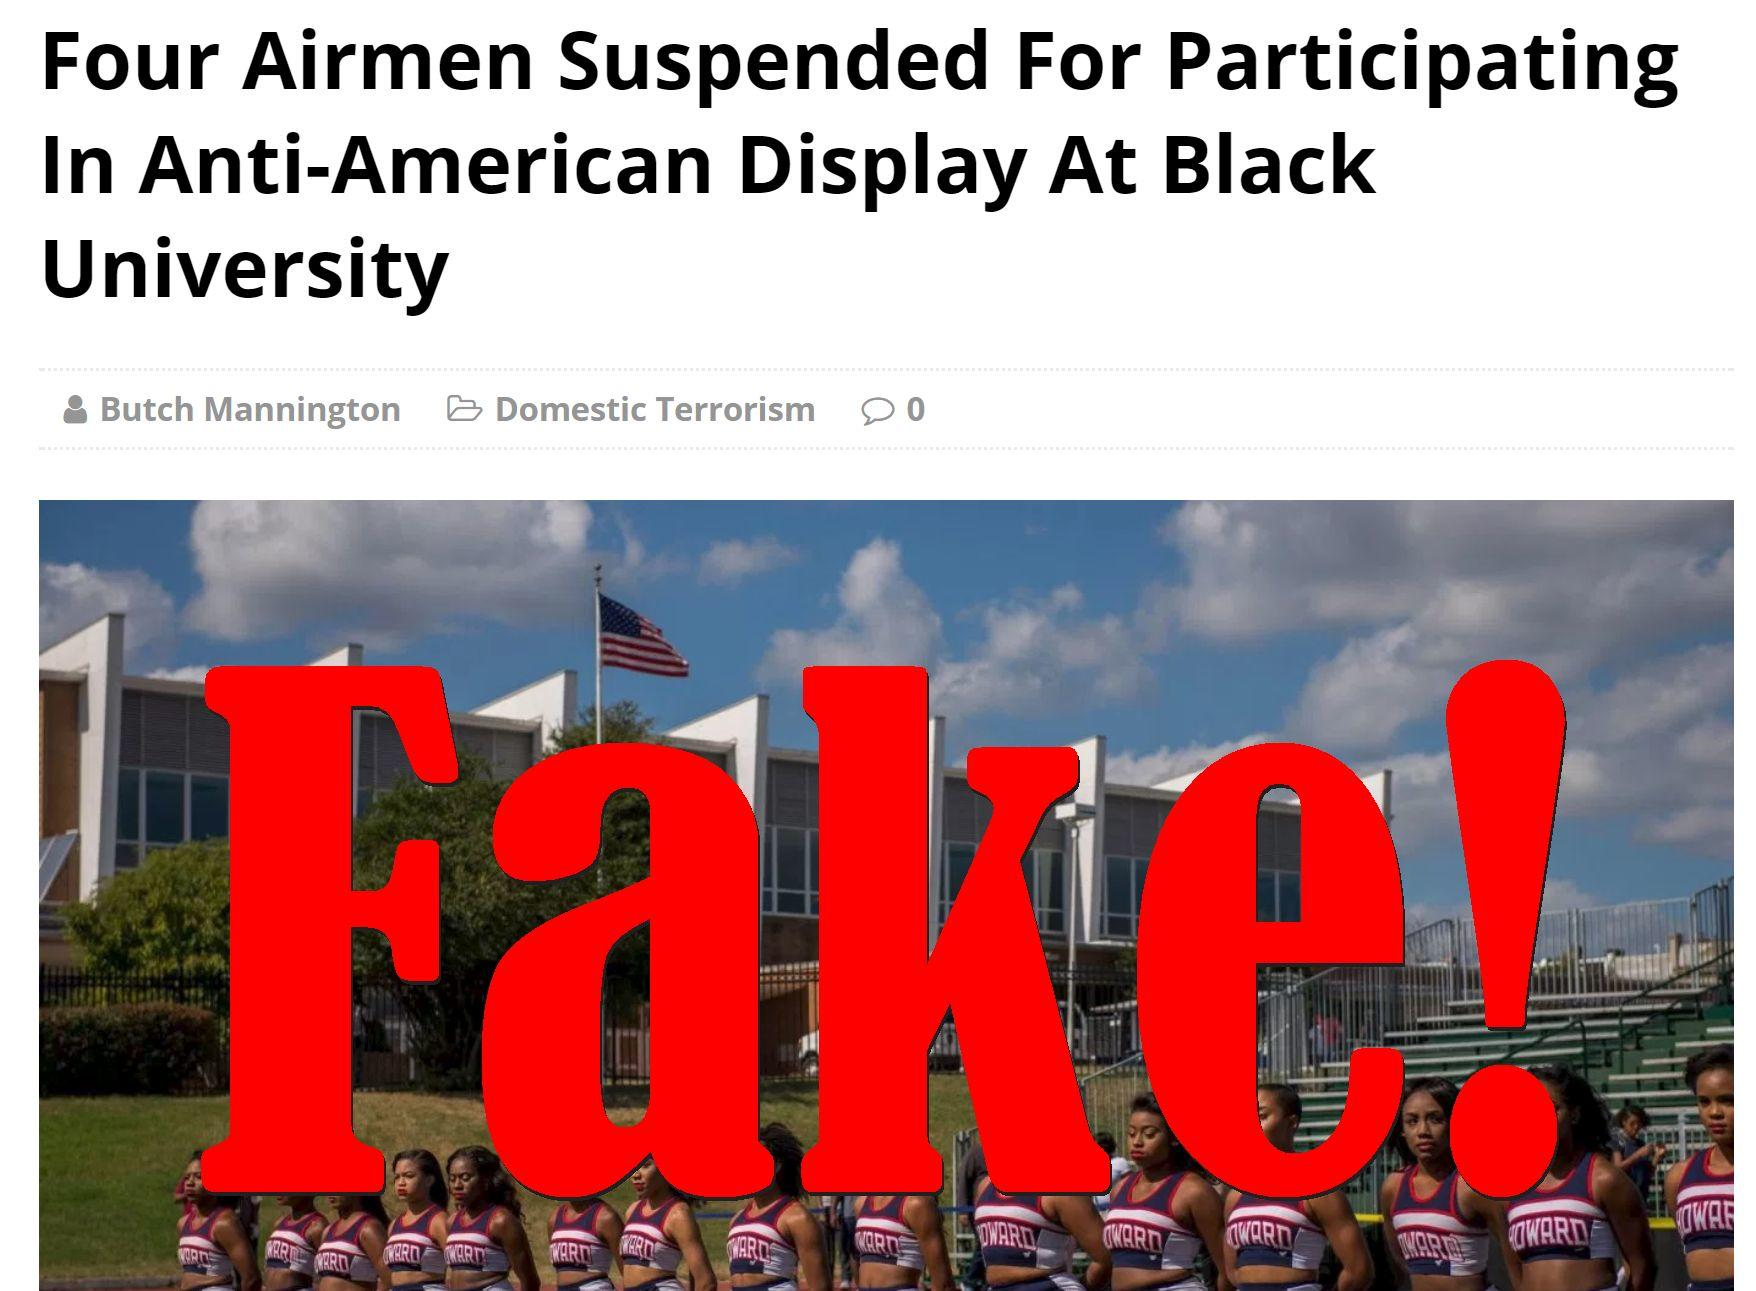 Fake News: Four Airmen NOT Suspended For Participating In Anti-American Display At Black University